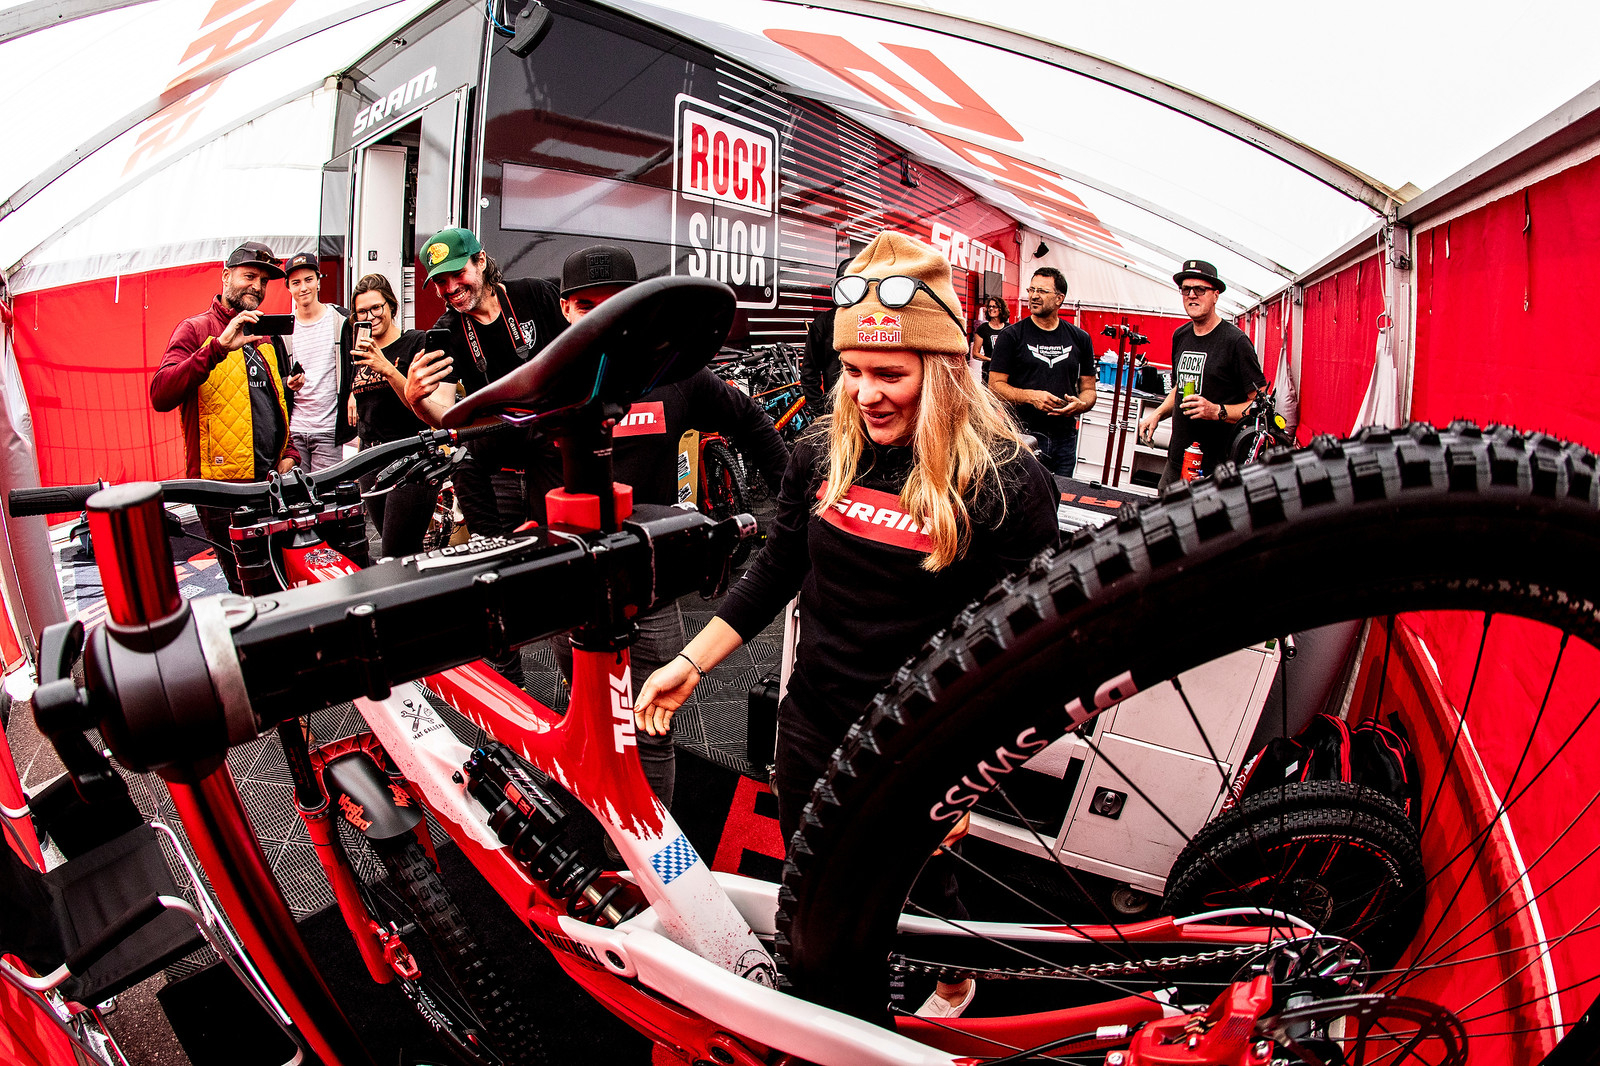 OH SNAP! - WORLD CHAMPS BIKE - Vali Holl's YT TUES - Mountain Biking Pictures - Vital MTB